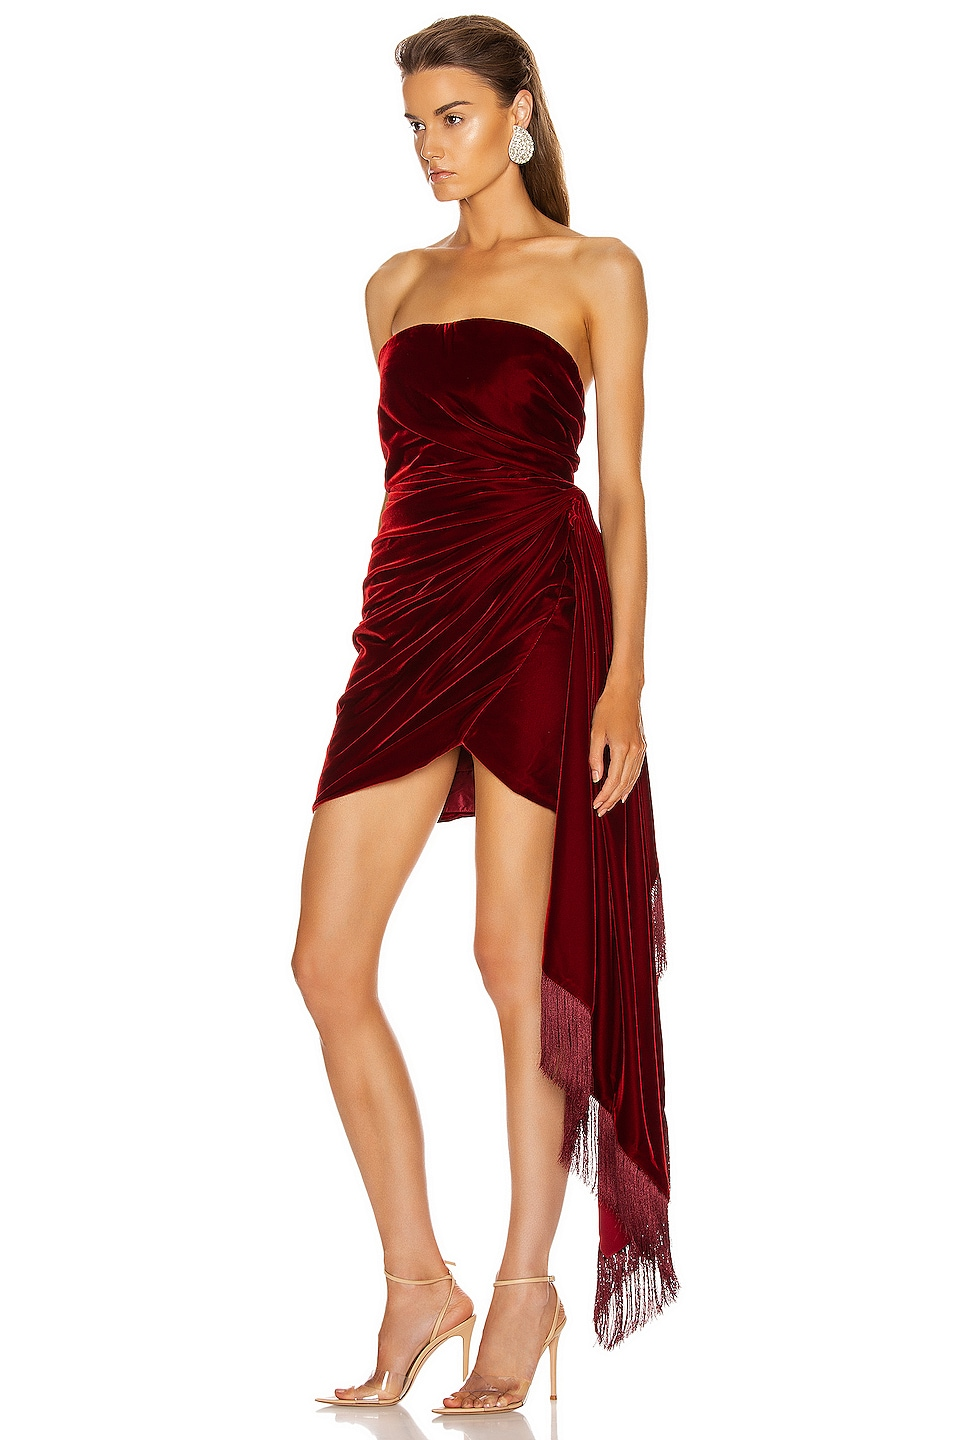 Image 3 of Oscar de la Renta Strapless Cocktail Dress in Claret